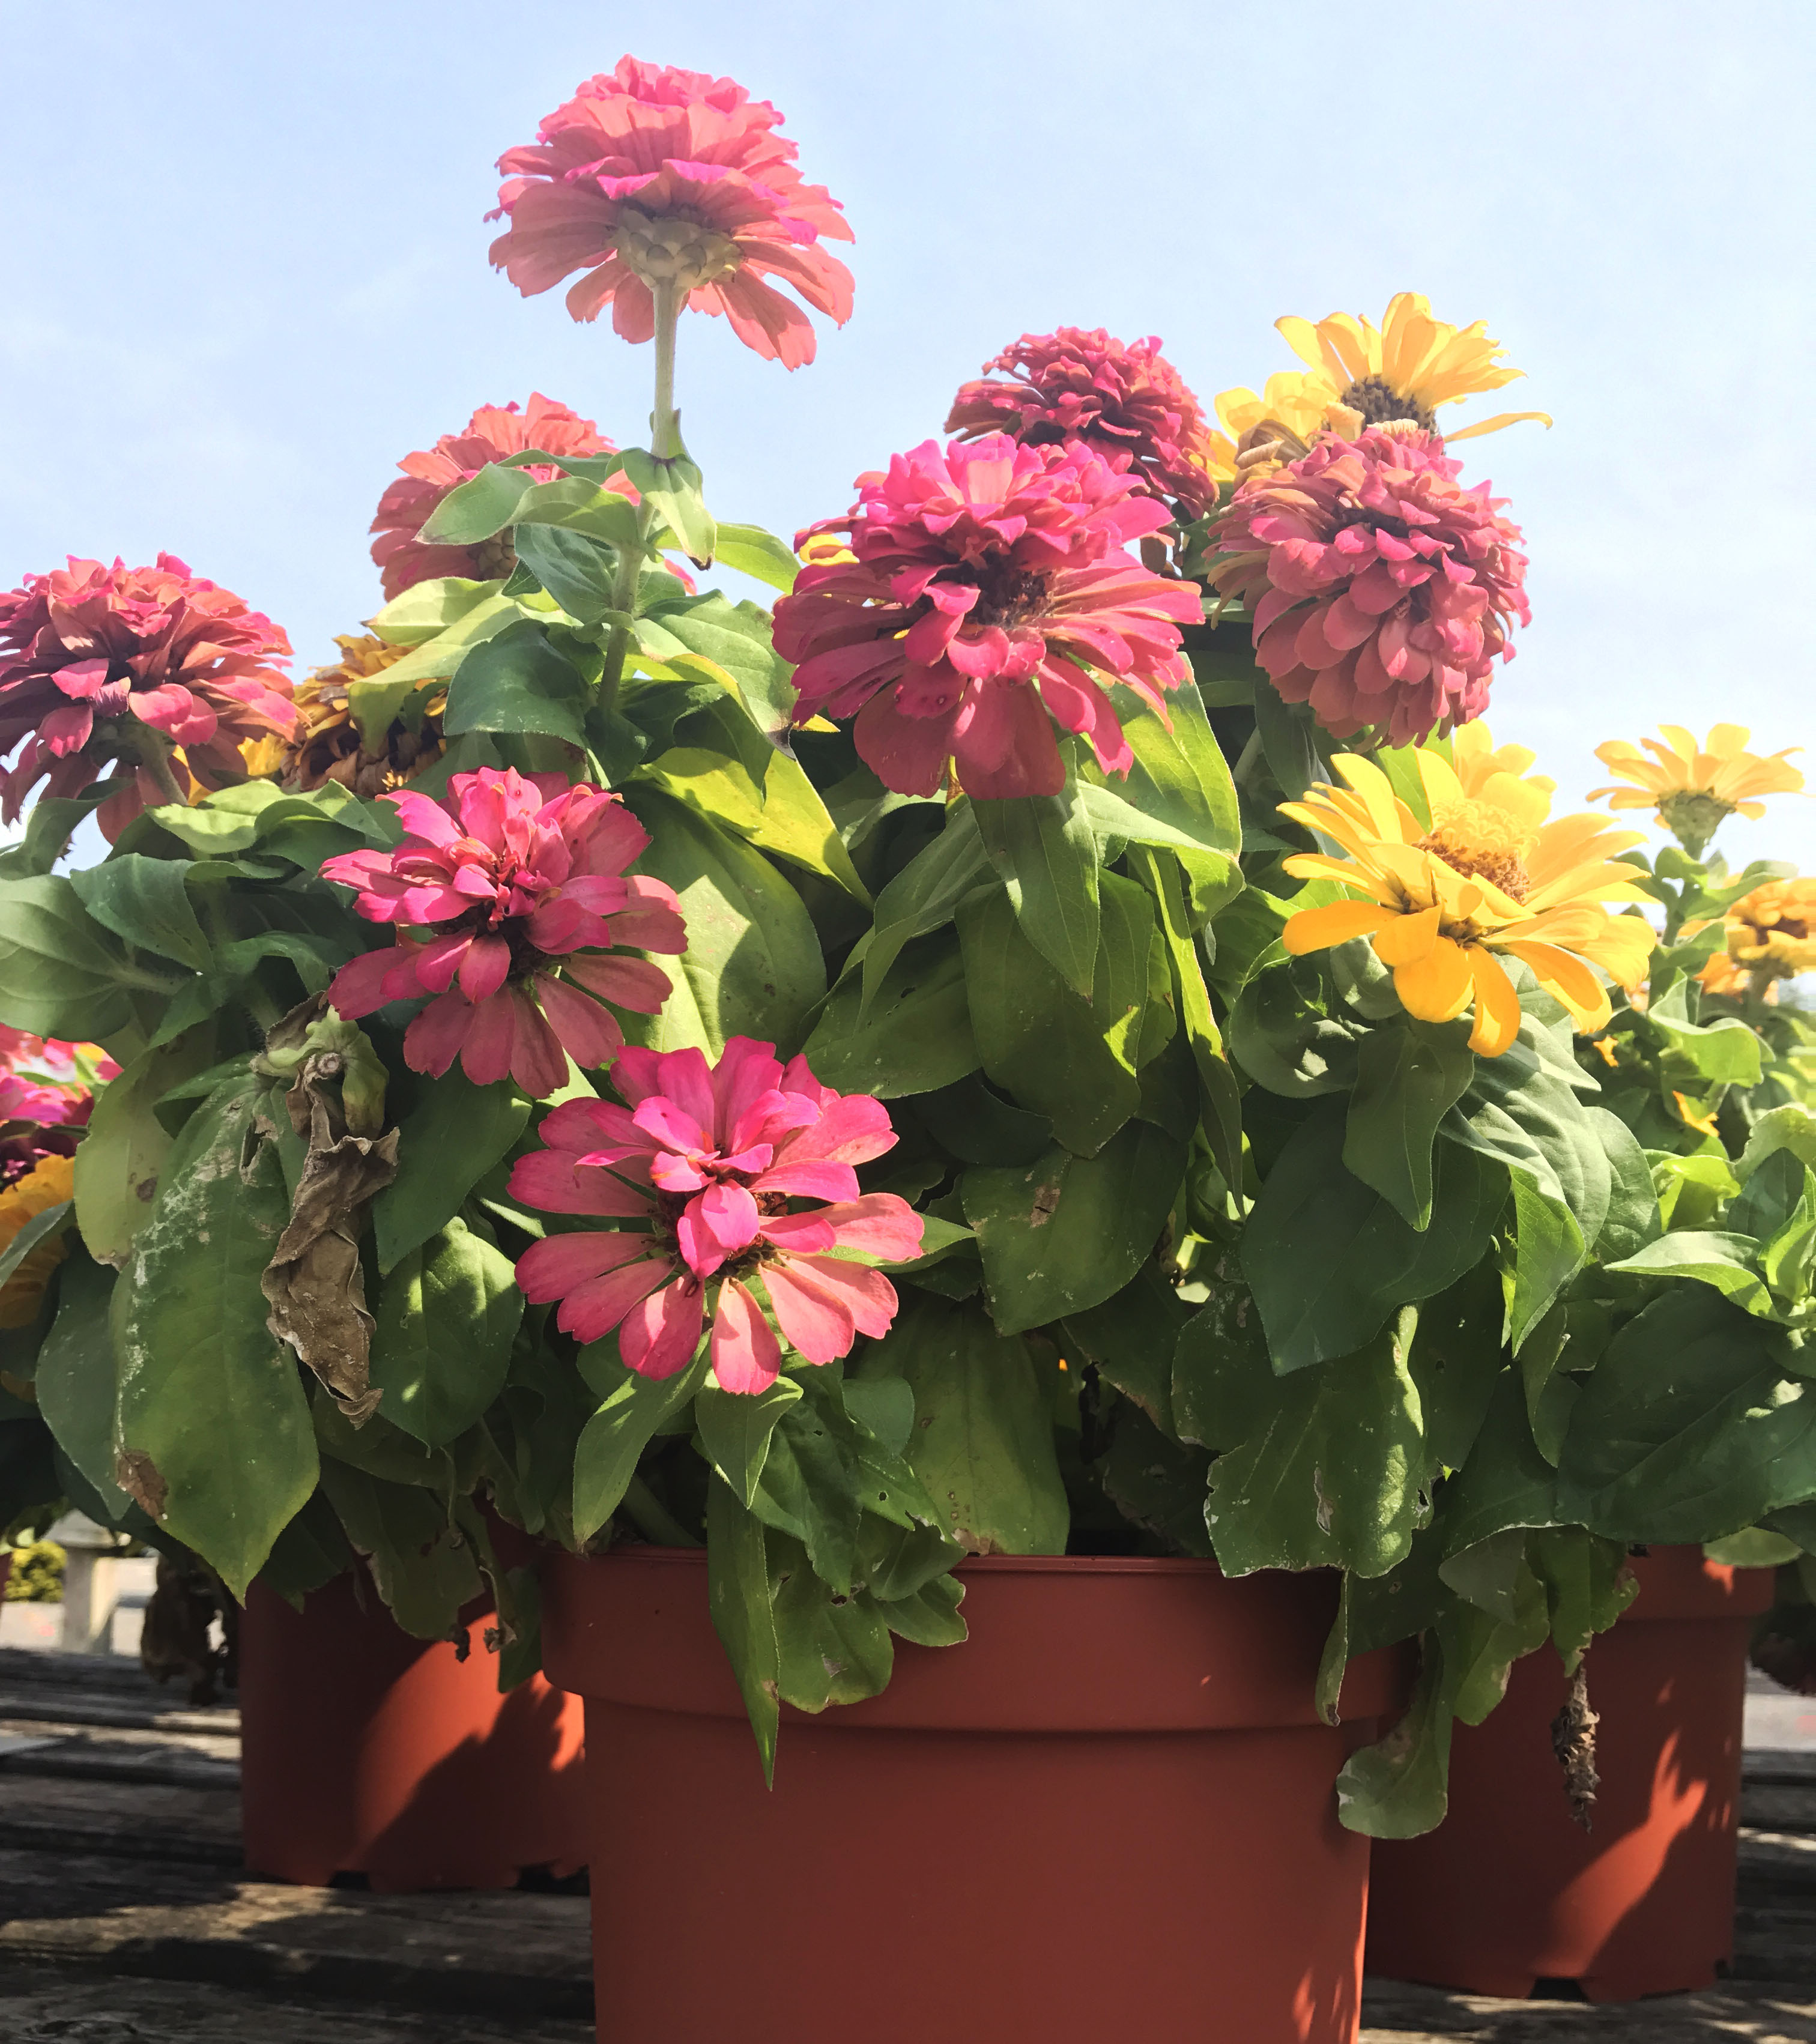 Zinnia: The Potted Summer Annual - Dambly's Garden Center on aster plants, pentas plants, dahlia plants, verbena plants, rose plants, lantana plants, hibiscus plants, tulip plants, calendula plants, geranium plants, honeysuckle plants, salvia plants, nasturtium plants, yucca plants, garden plants, sweet pea plants, cosmos plants, peruvian lily plants, dill plants, begonia plants,